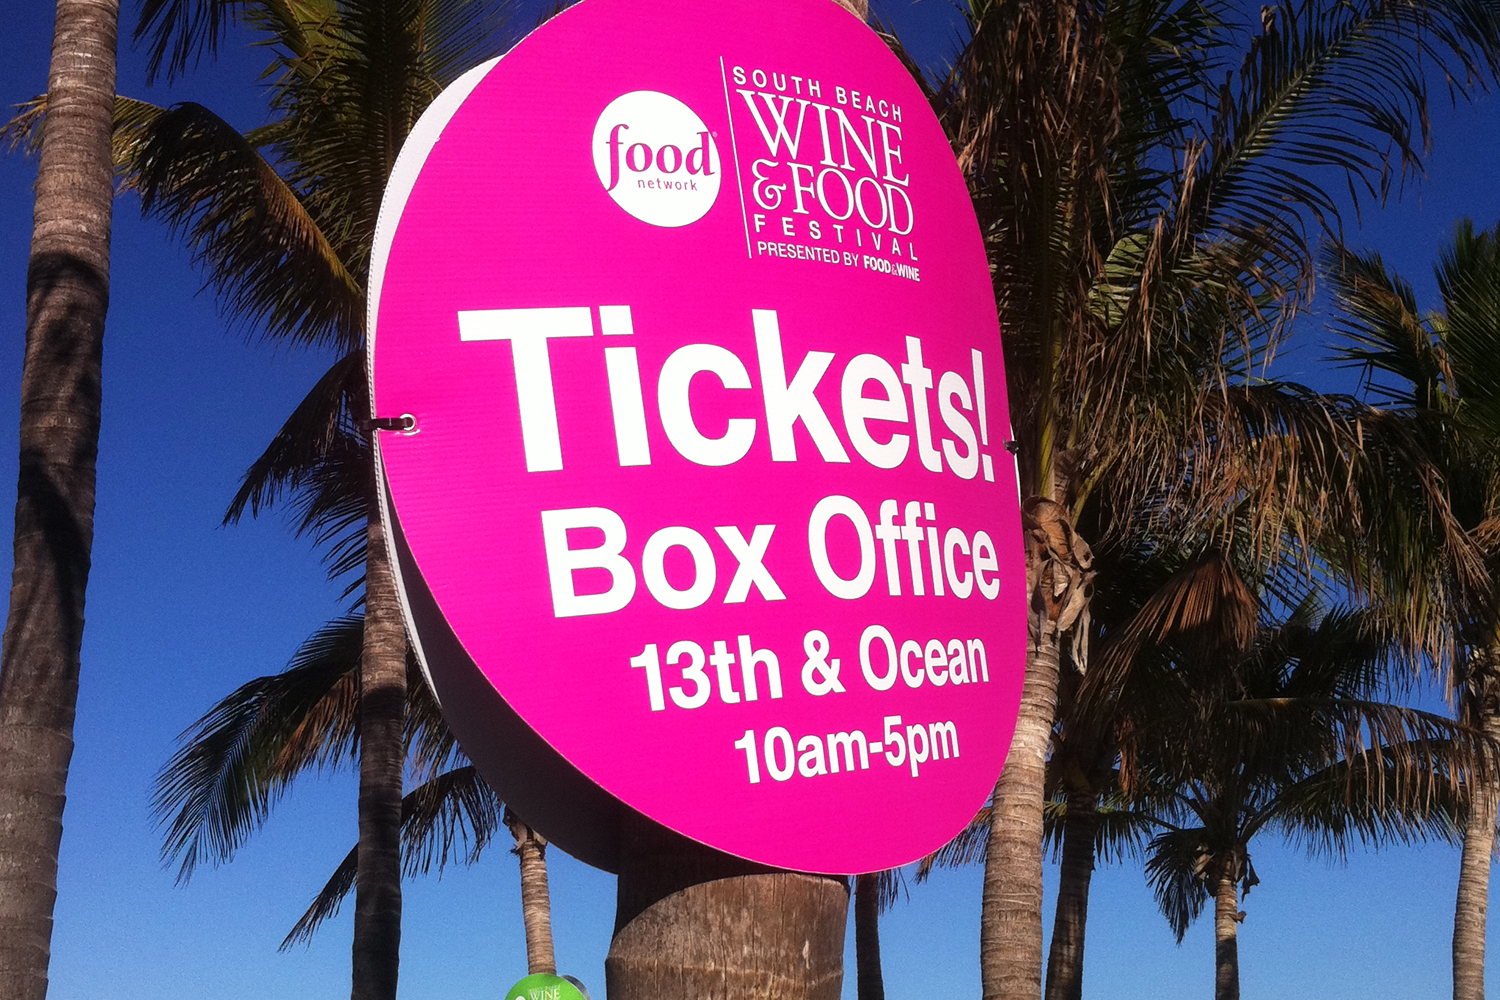 portfolio_signs_sobe_wff_tickets.jpg